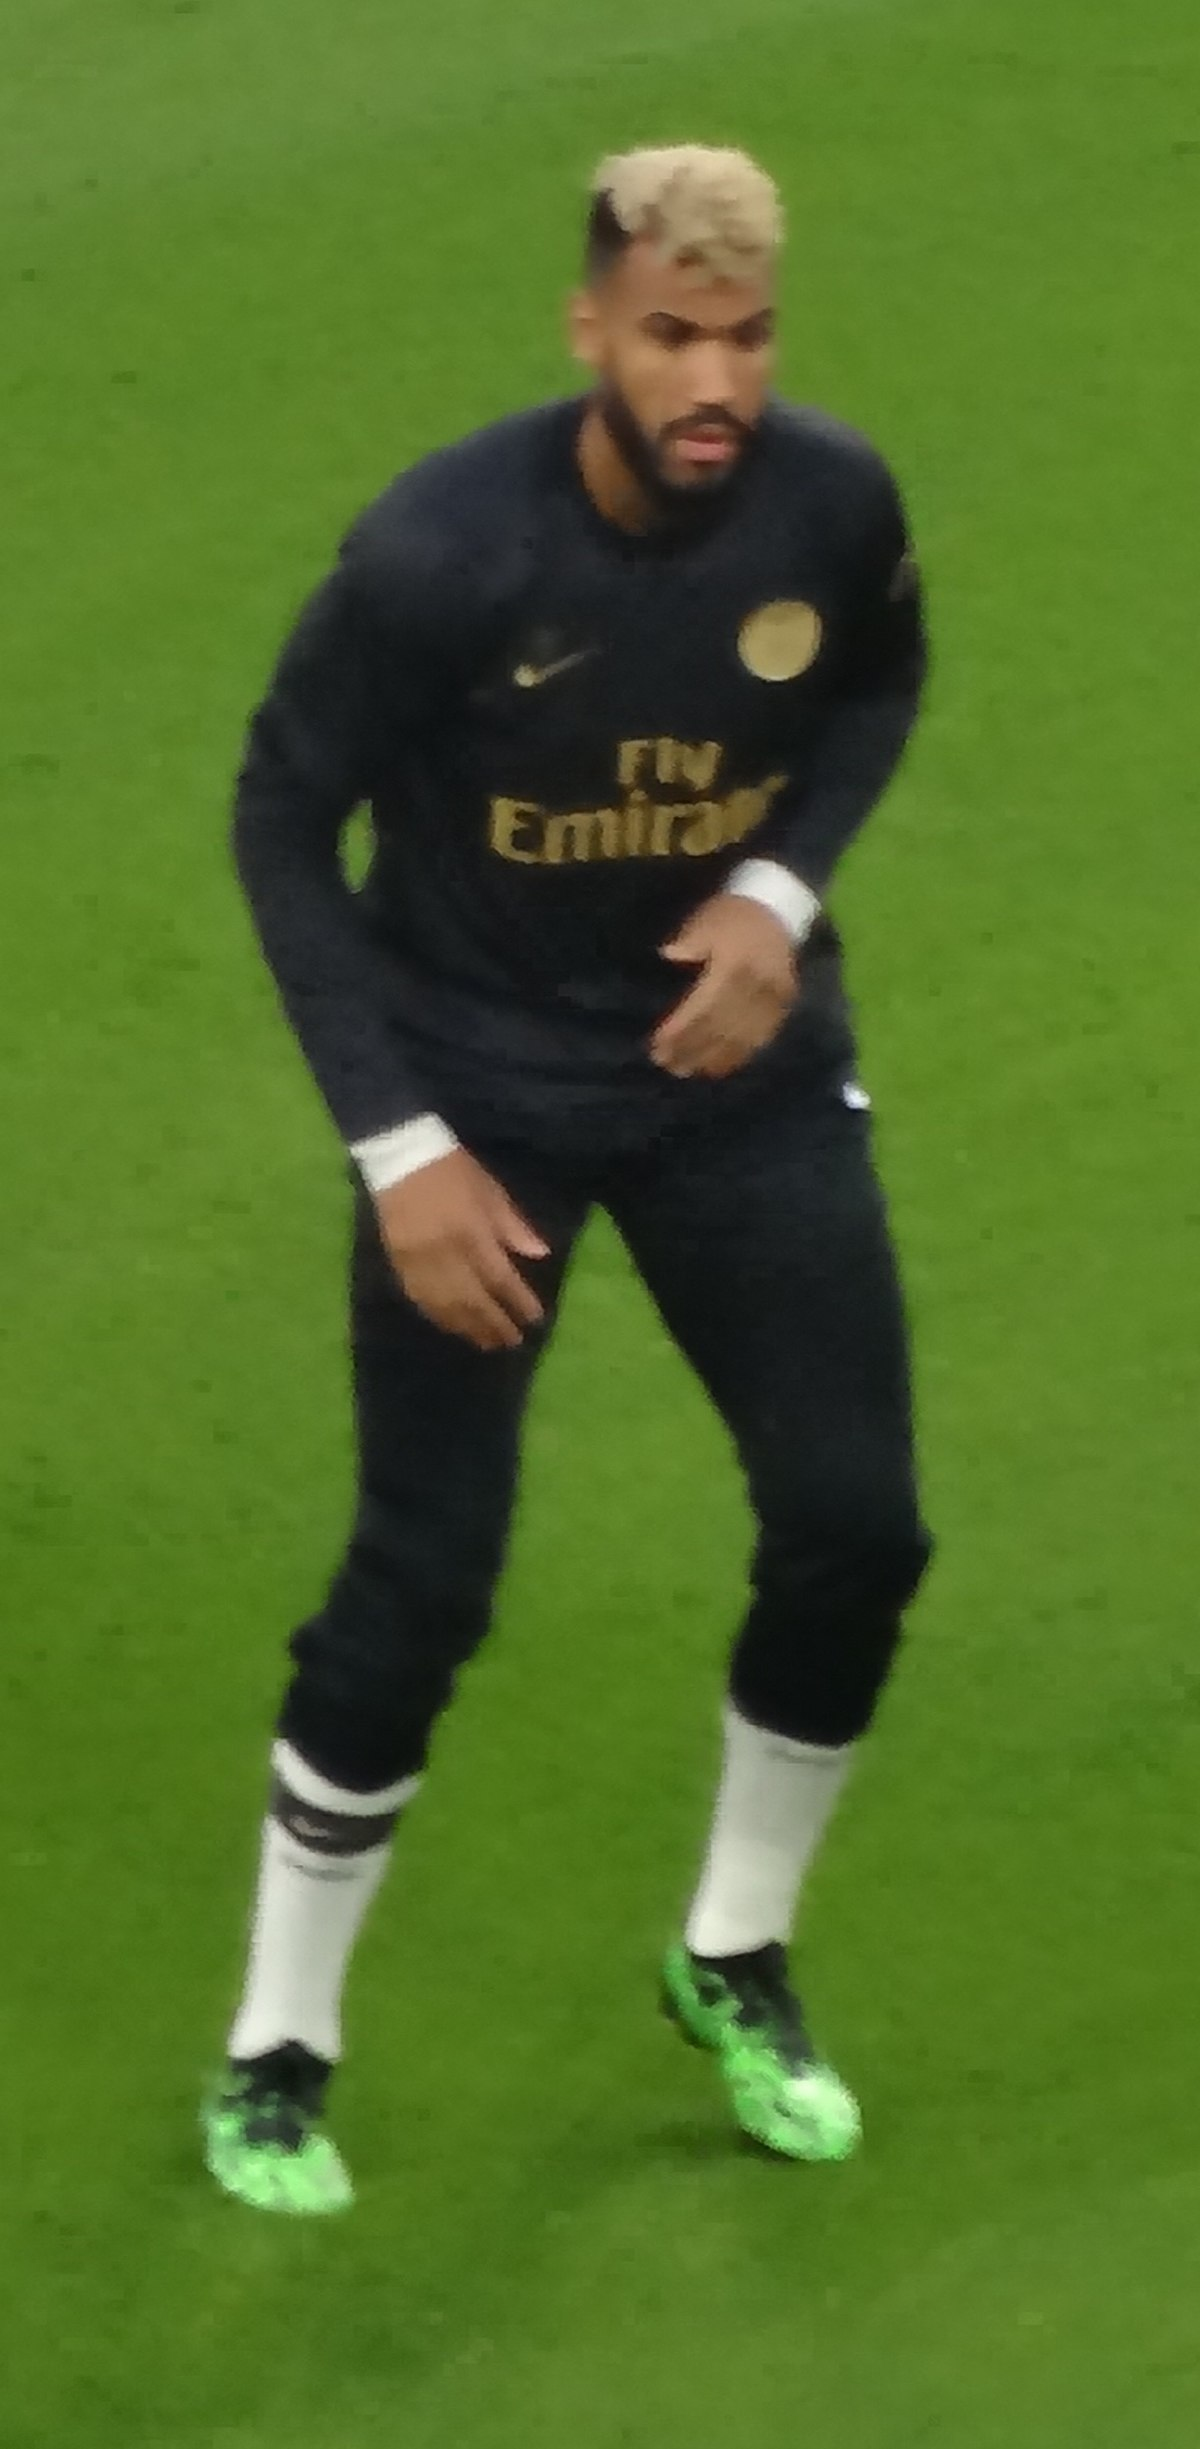 File:Eric Choupo Moting (PSG).jpg - Wikimedia Commons